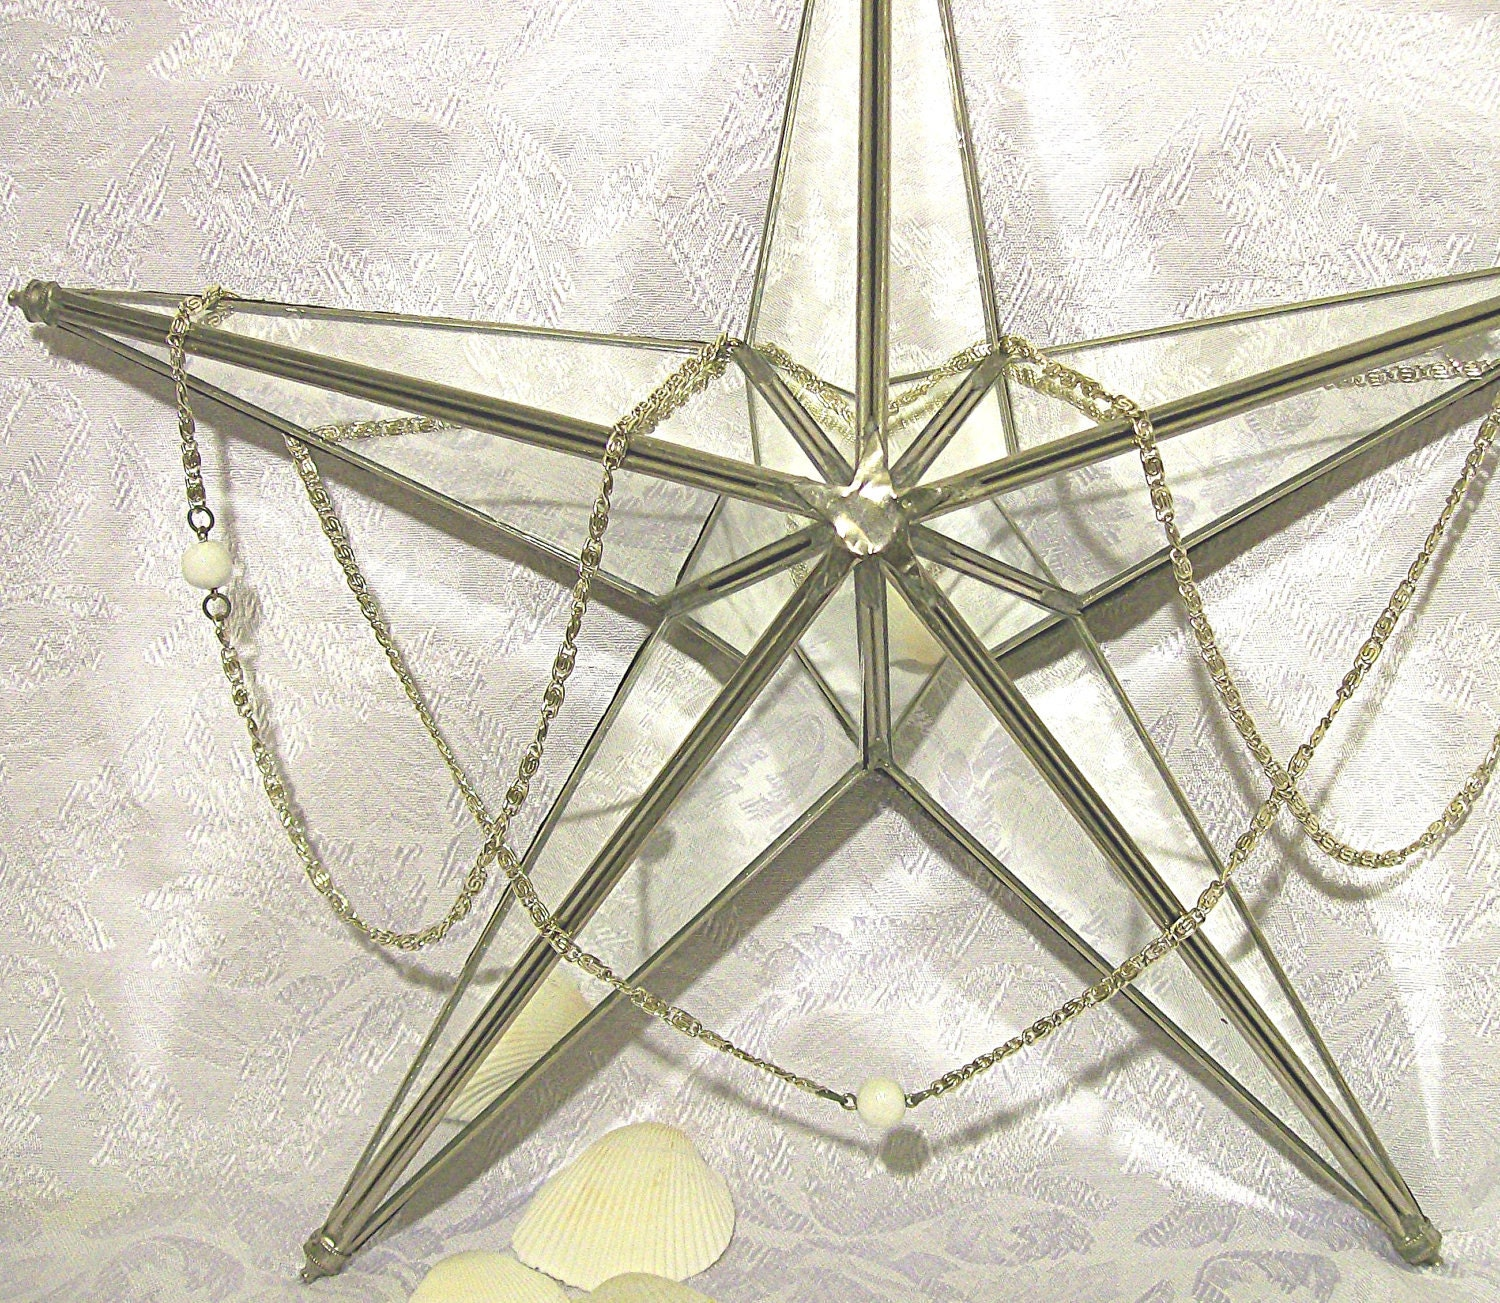 Vintage Star Wall Decor : Sold vintage mirror star wall decor